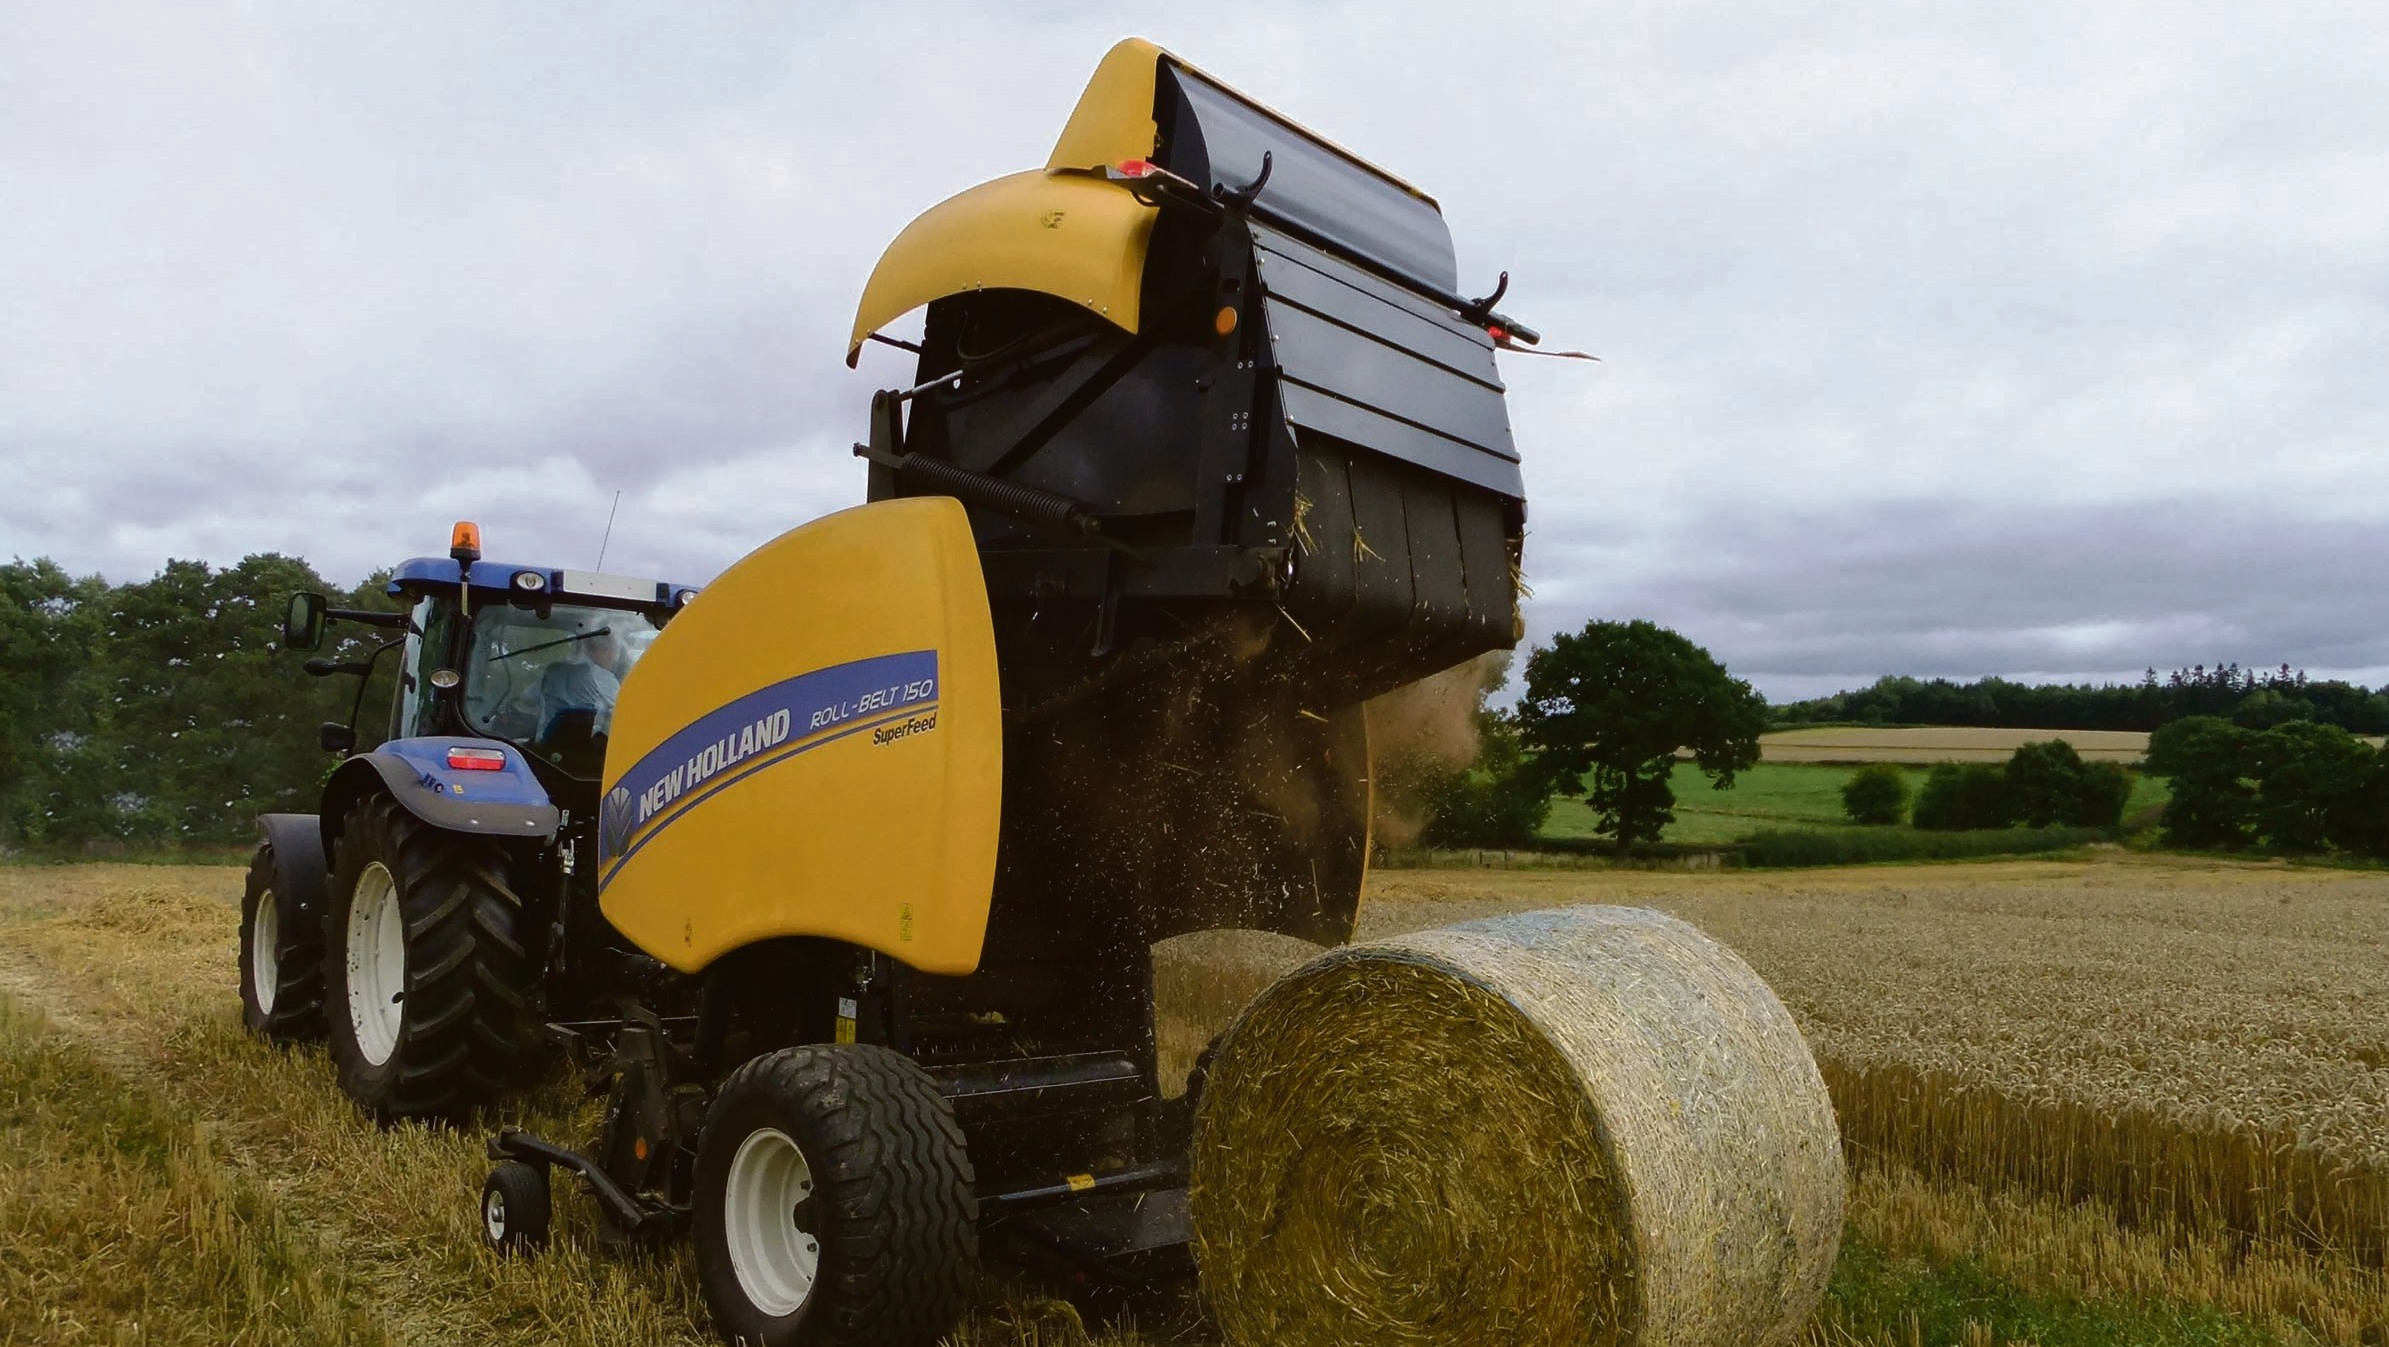 On test: New Holland's latest variable chamber round baler